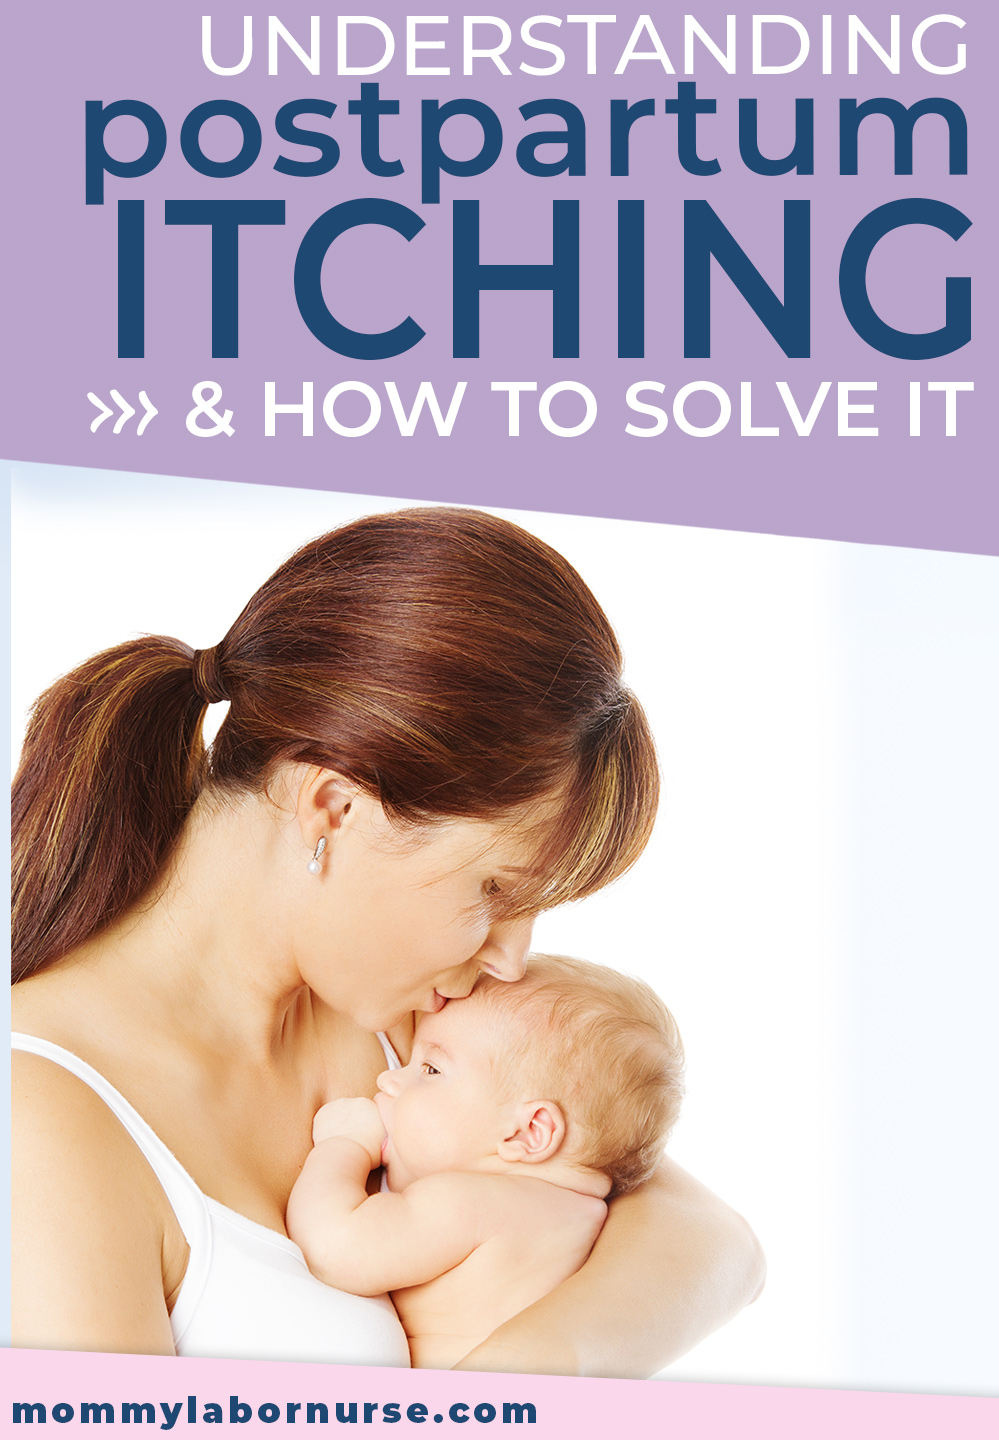 Postpartum Itching, Postpartum Itching DOWN THERE (and how to help!)